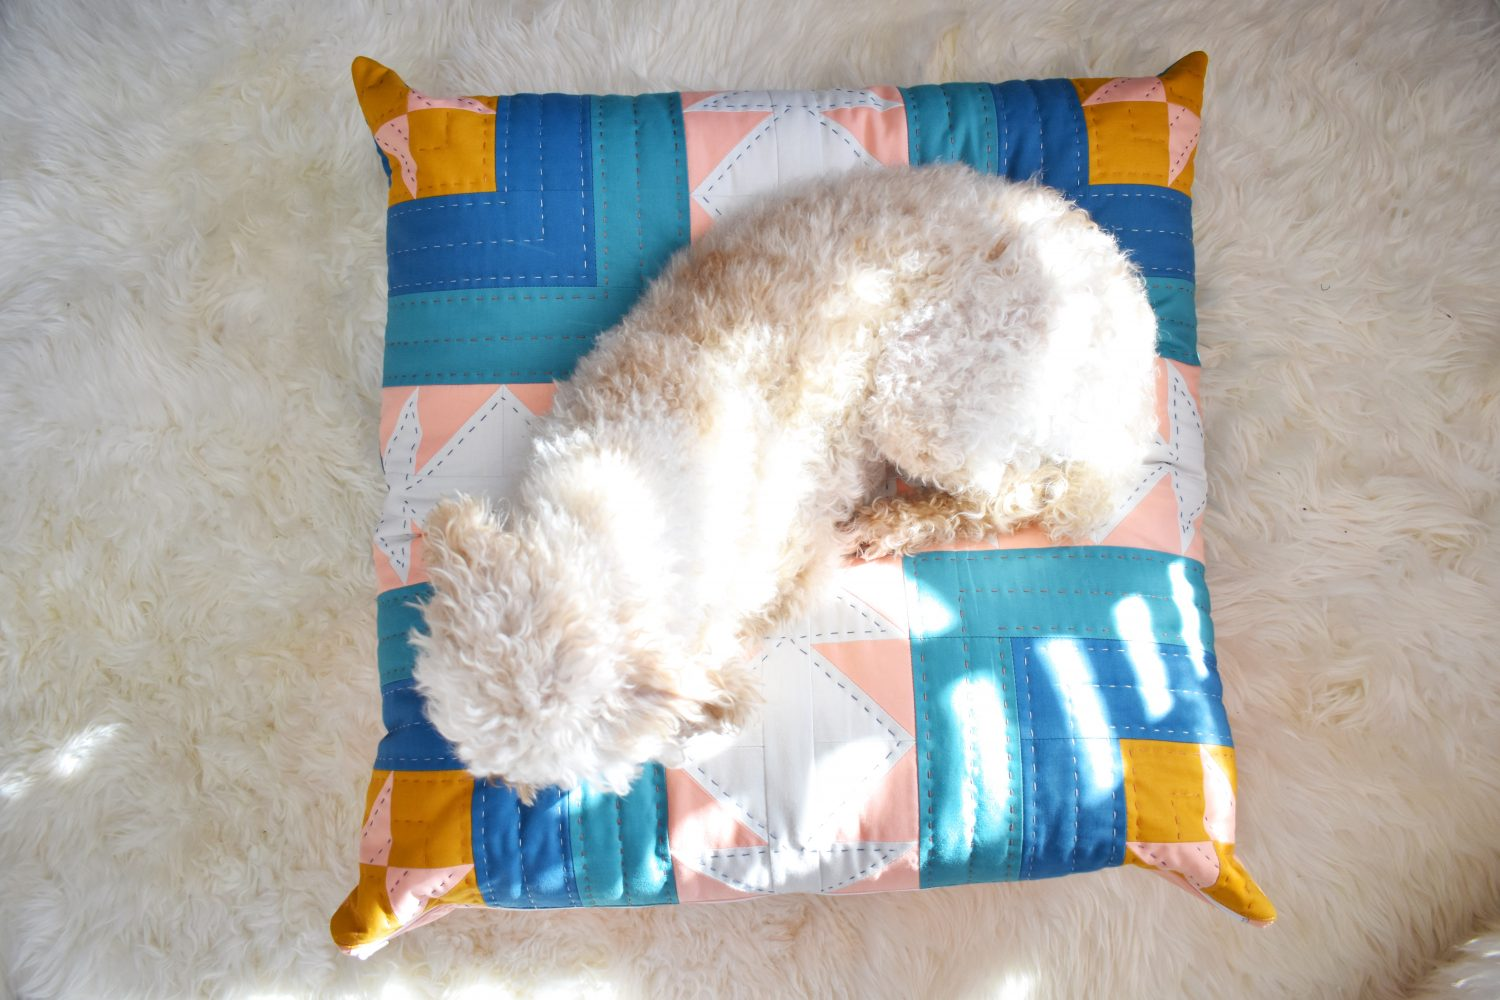 This dog bed diy is the perfect size for my miniature poodle